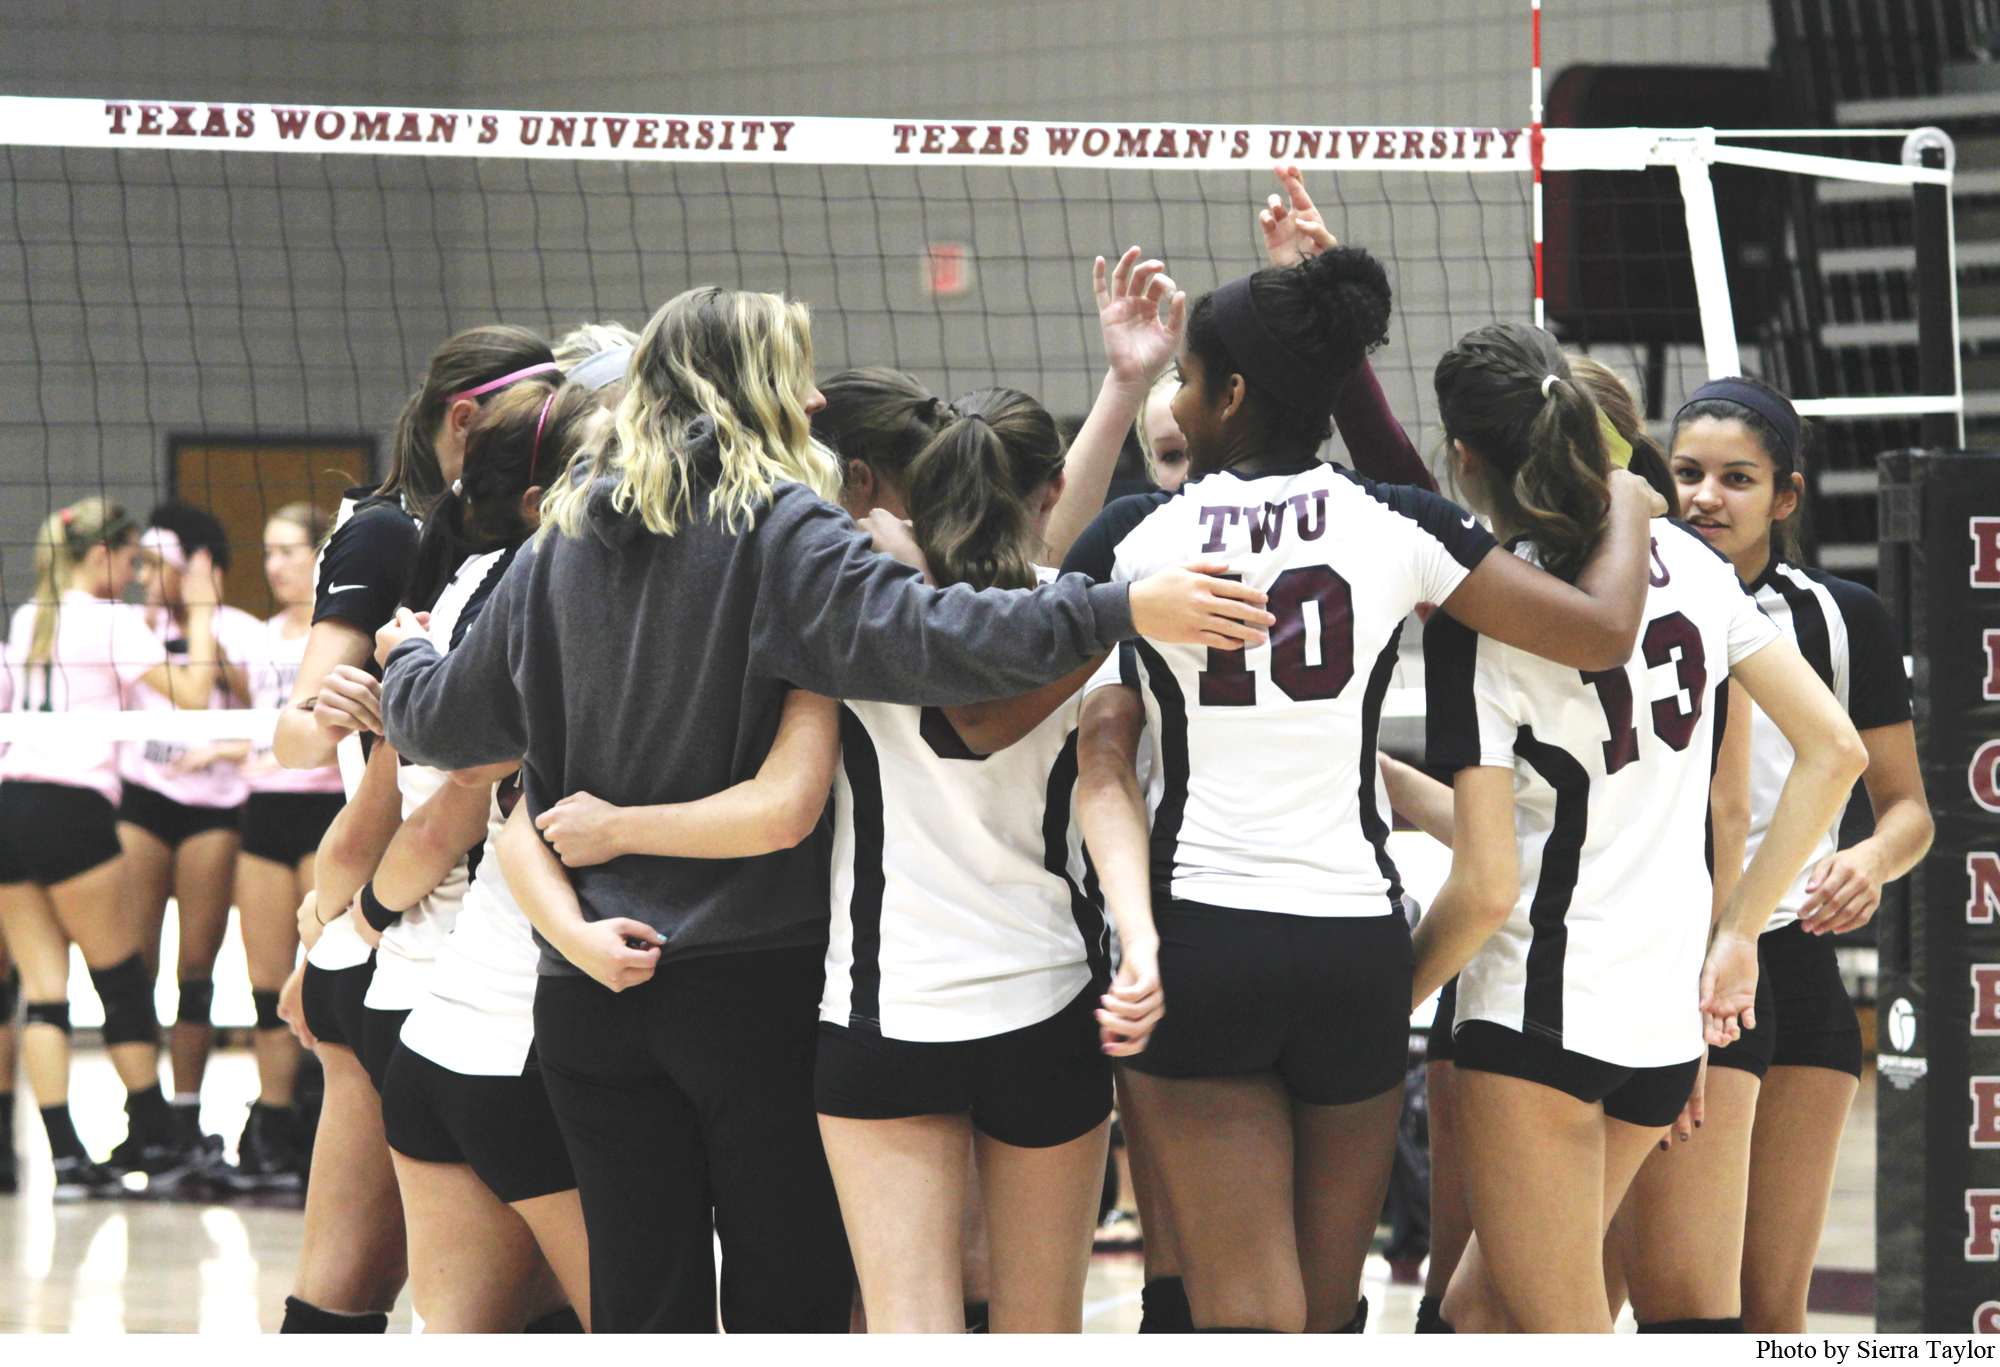 TWU Lady Pioneers huddle with their coach prior to the game on Oct. 13, 2015.